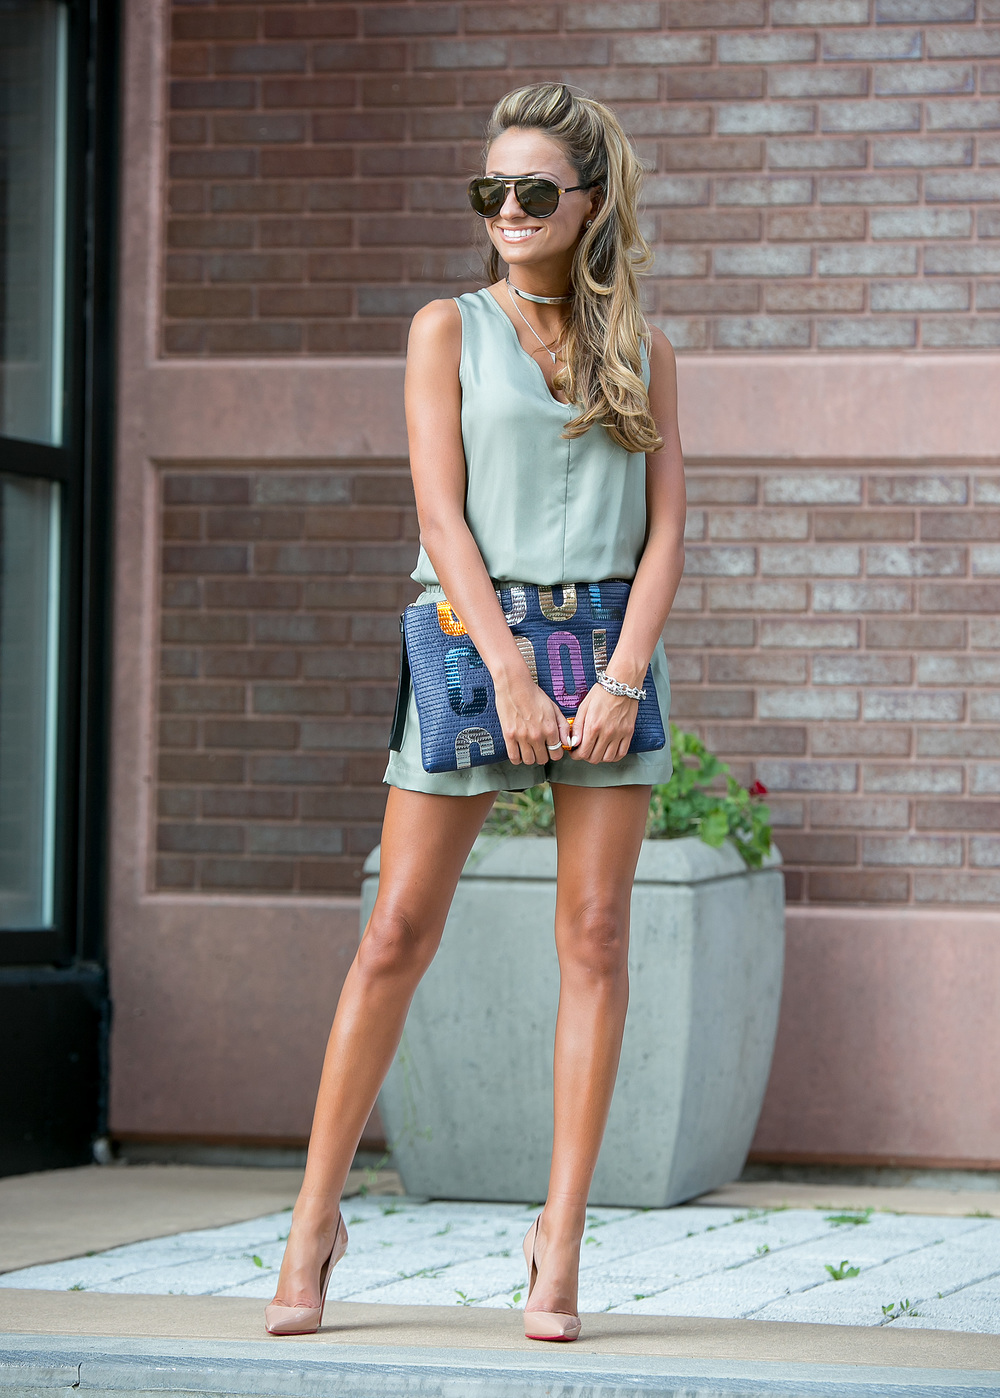 streetstyle blogger wearing rag and bone romper, christian louboutin pumps, and a lanvin clutch